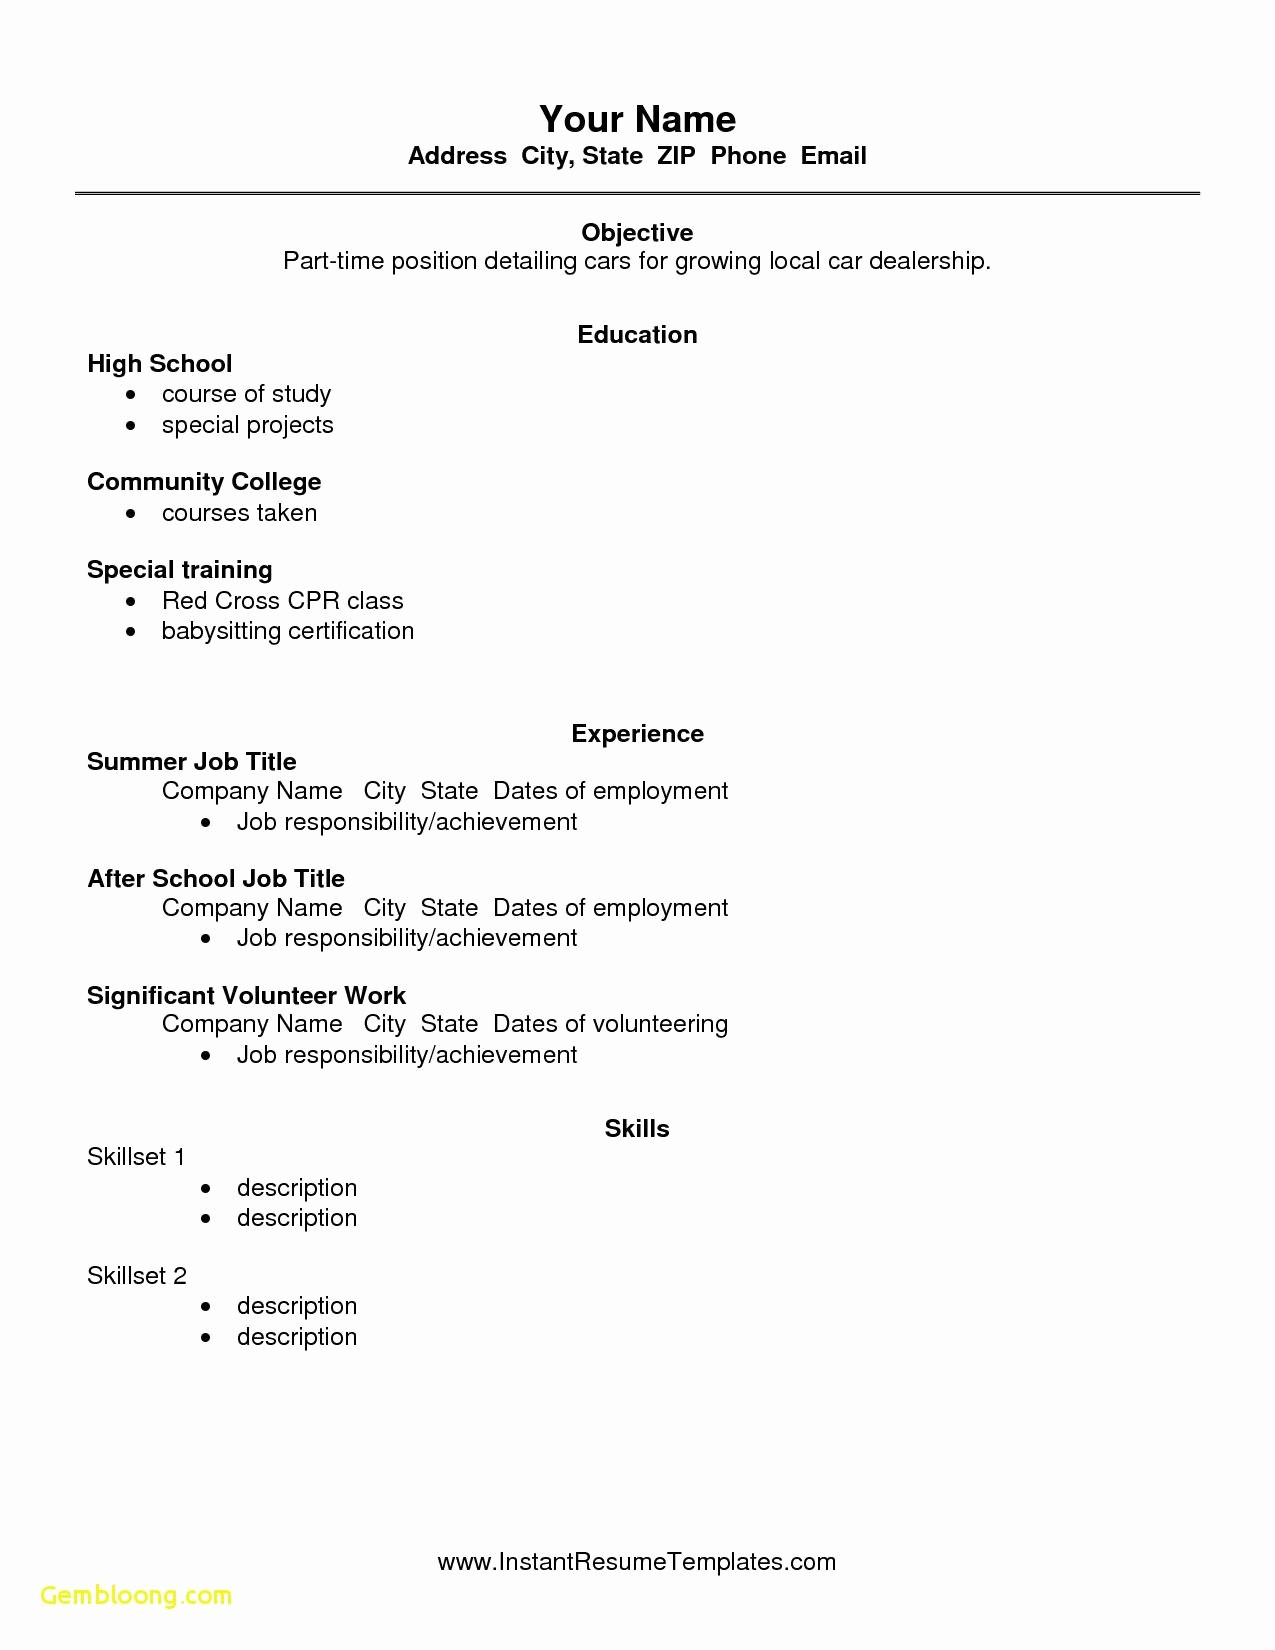 Simple Resume Examples for Students Luxury Free Resume Templates High School Students